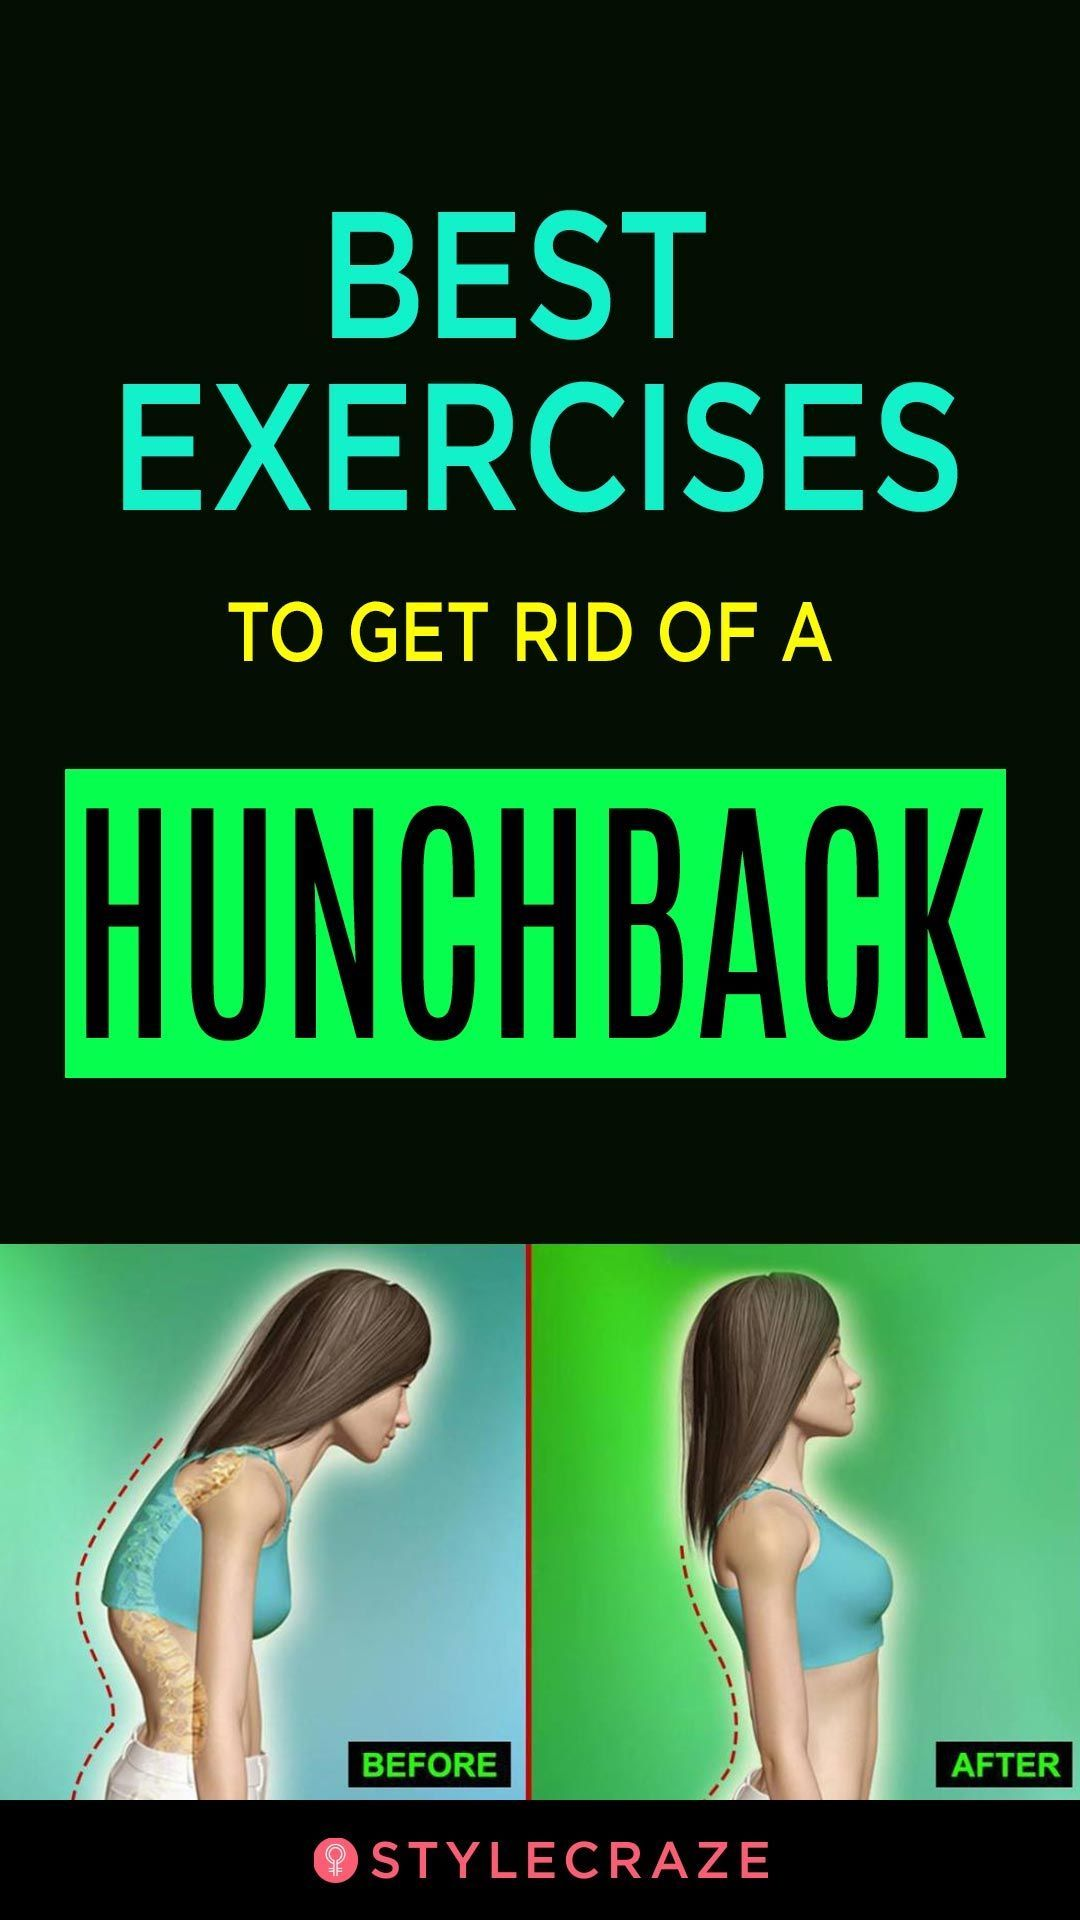 Best exercises to get rid of a hunchback health fitness